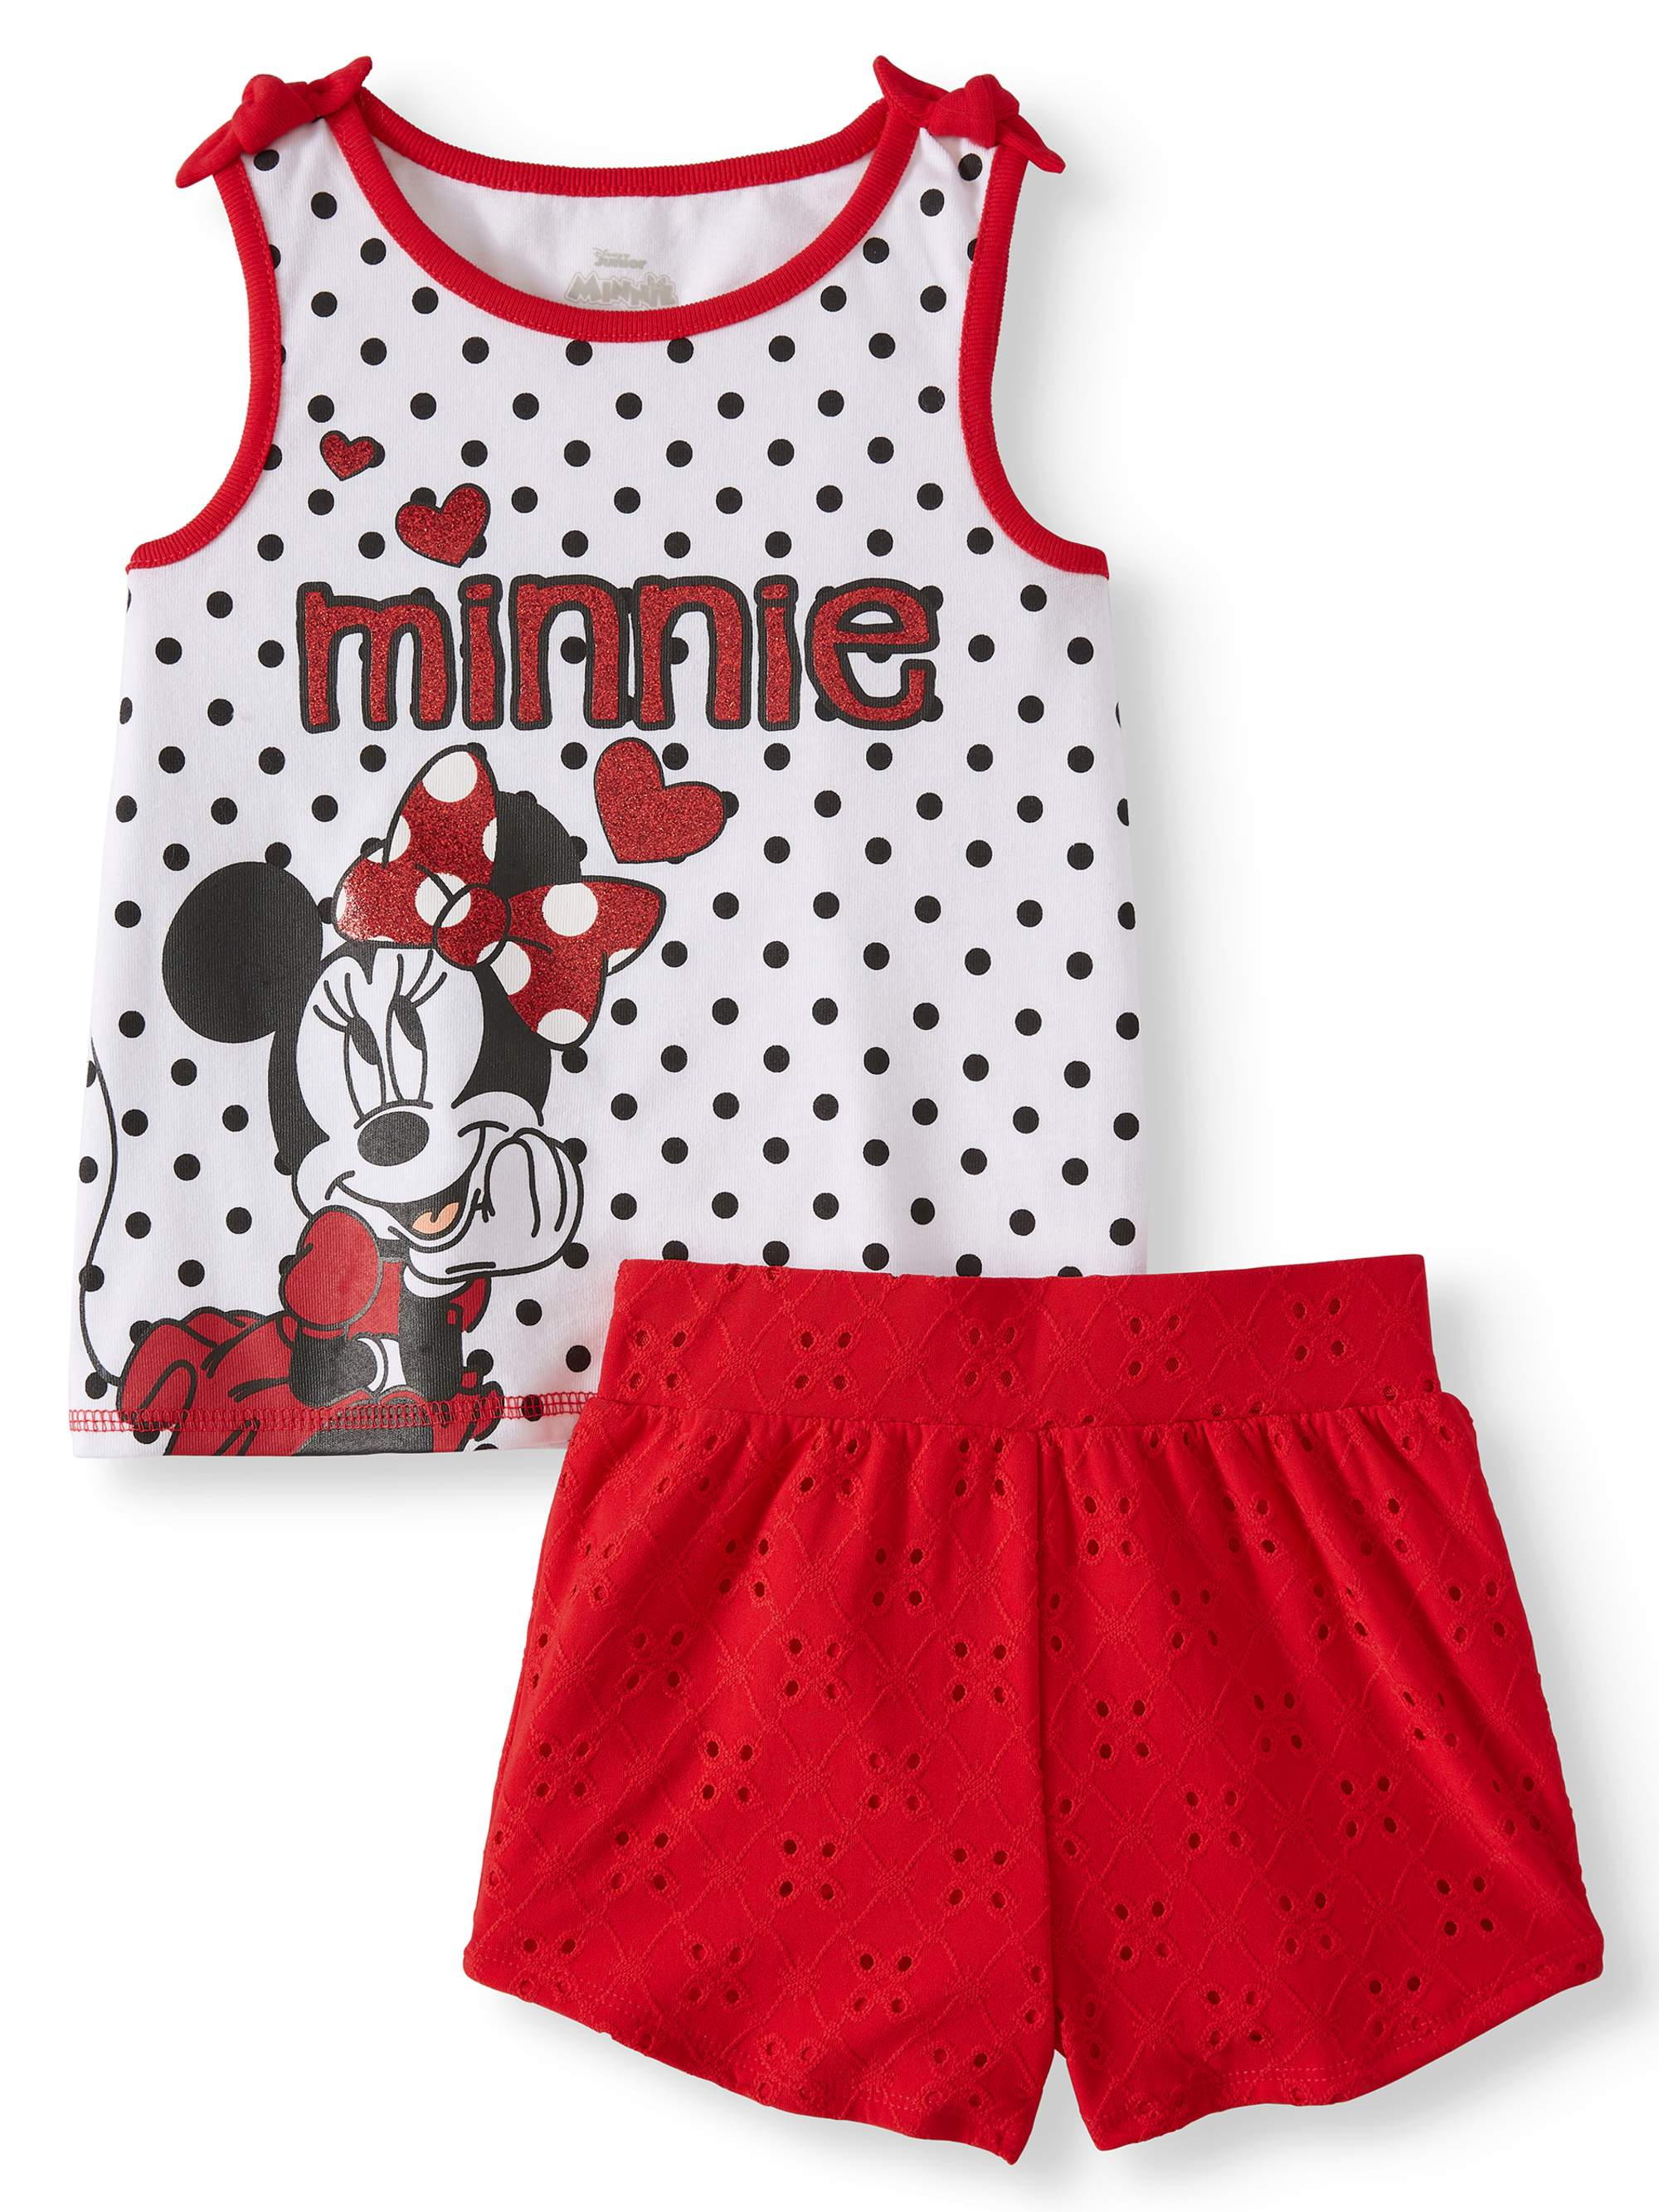 Tank Top and Shorts, 2pc Outfit Set (Toddler Girls)